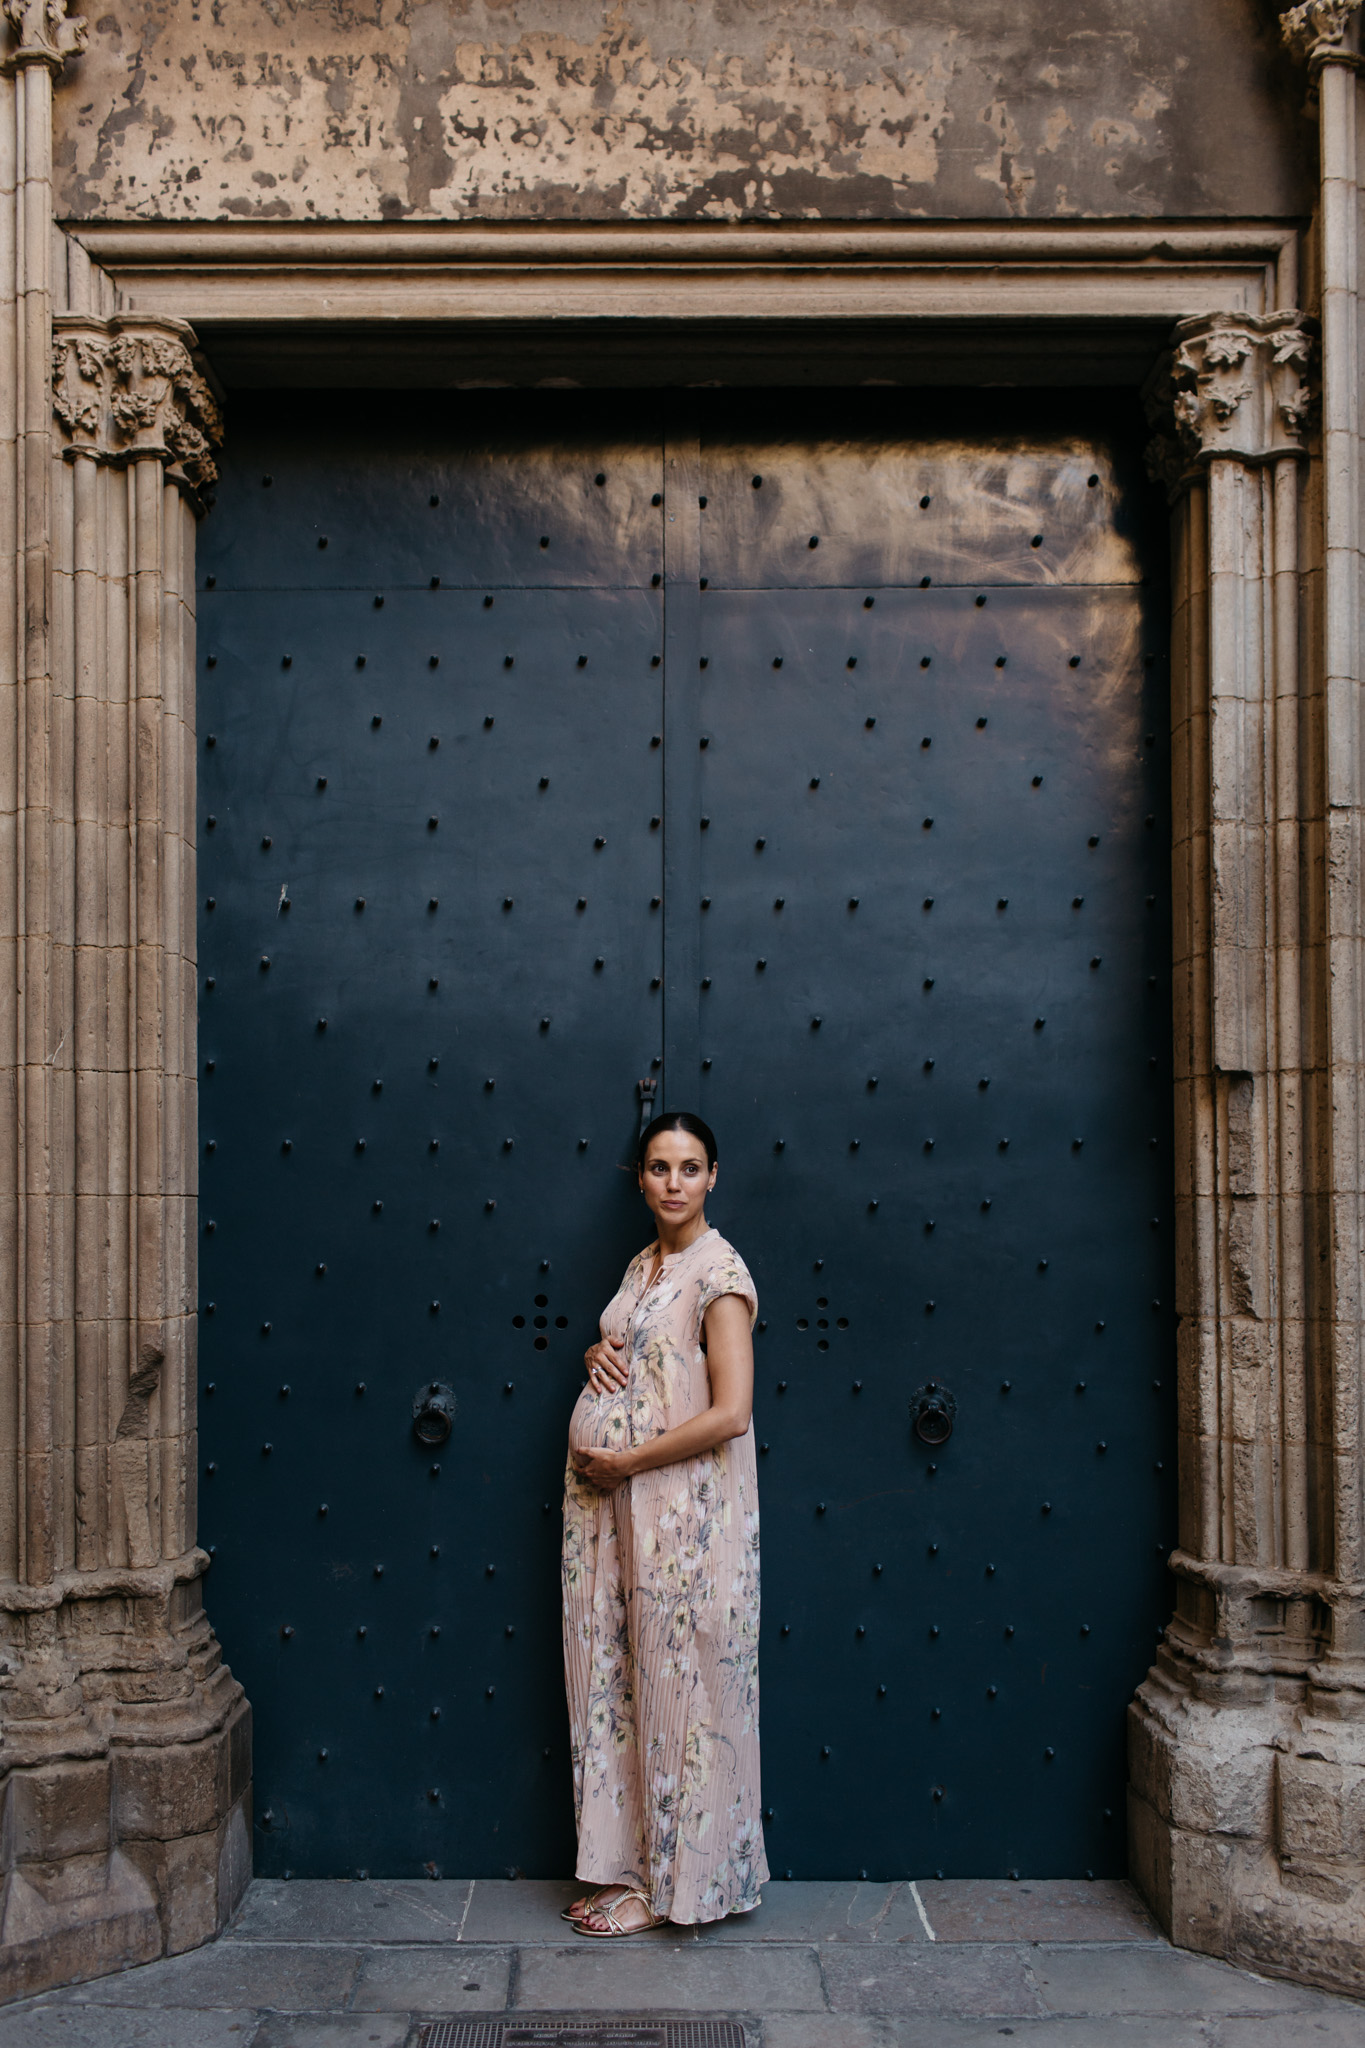 Maternity photoshoot in Barcelona's Gothic Quarter